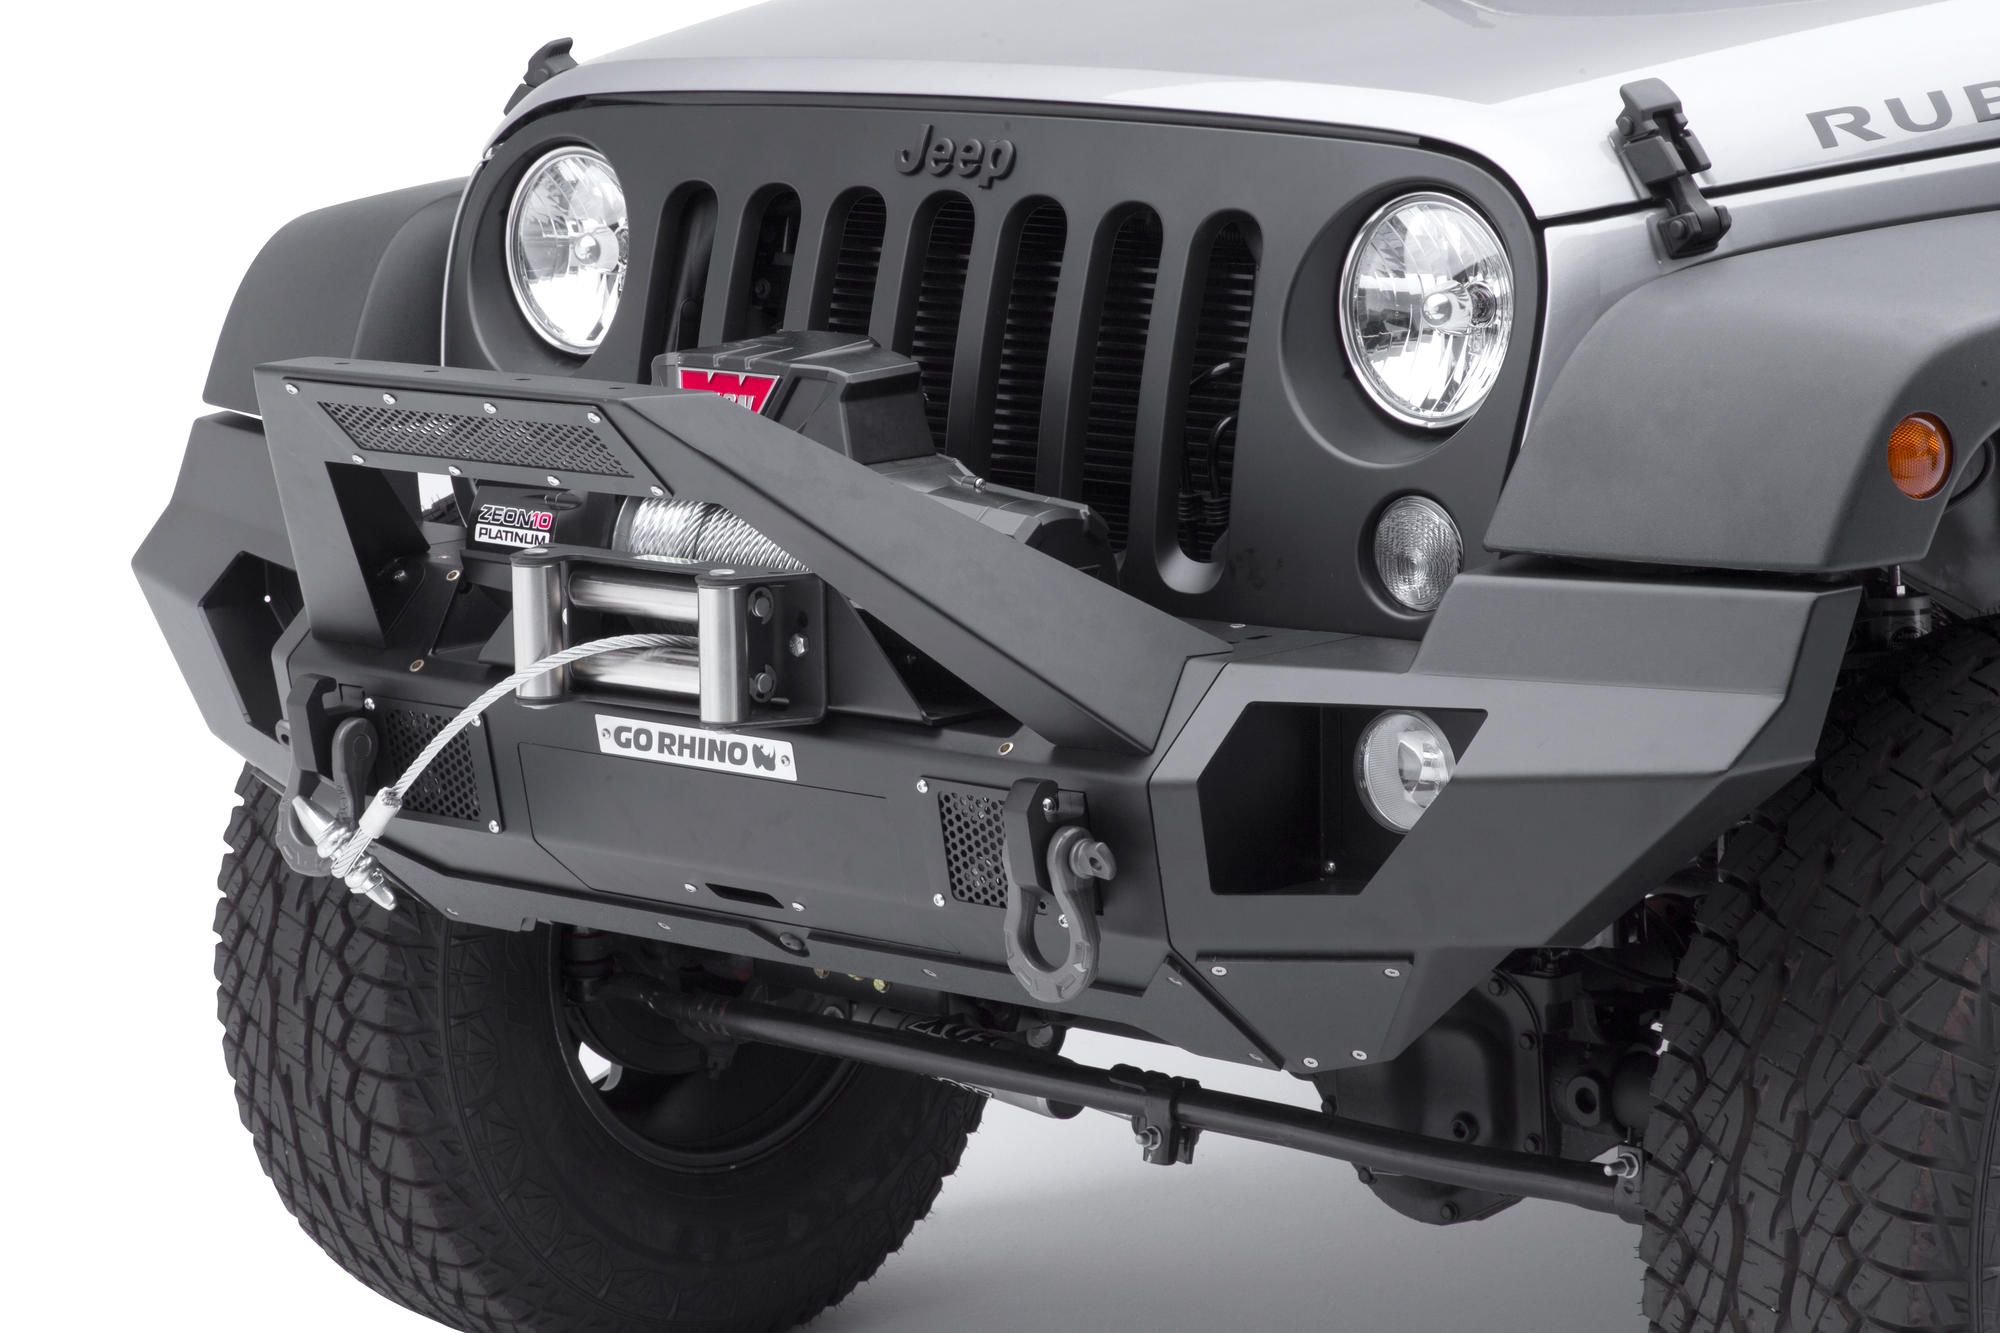 The Go Rhino Brj40 Front Bumper Is The Ultimate Modular Bumper For